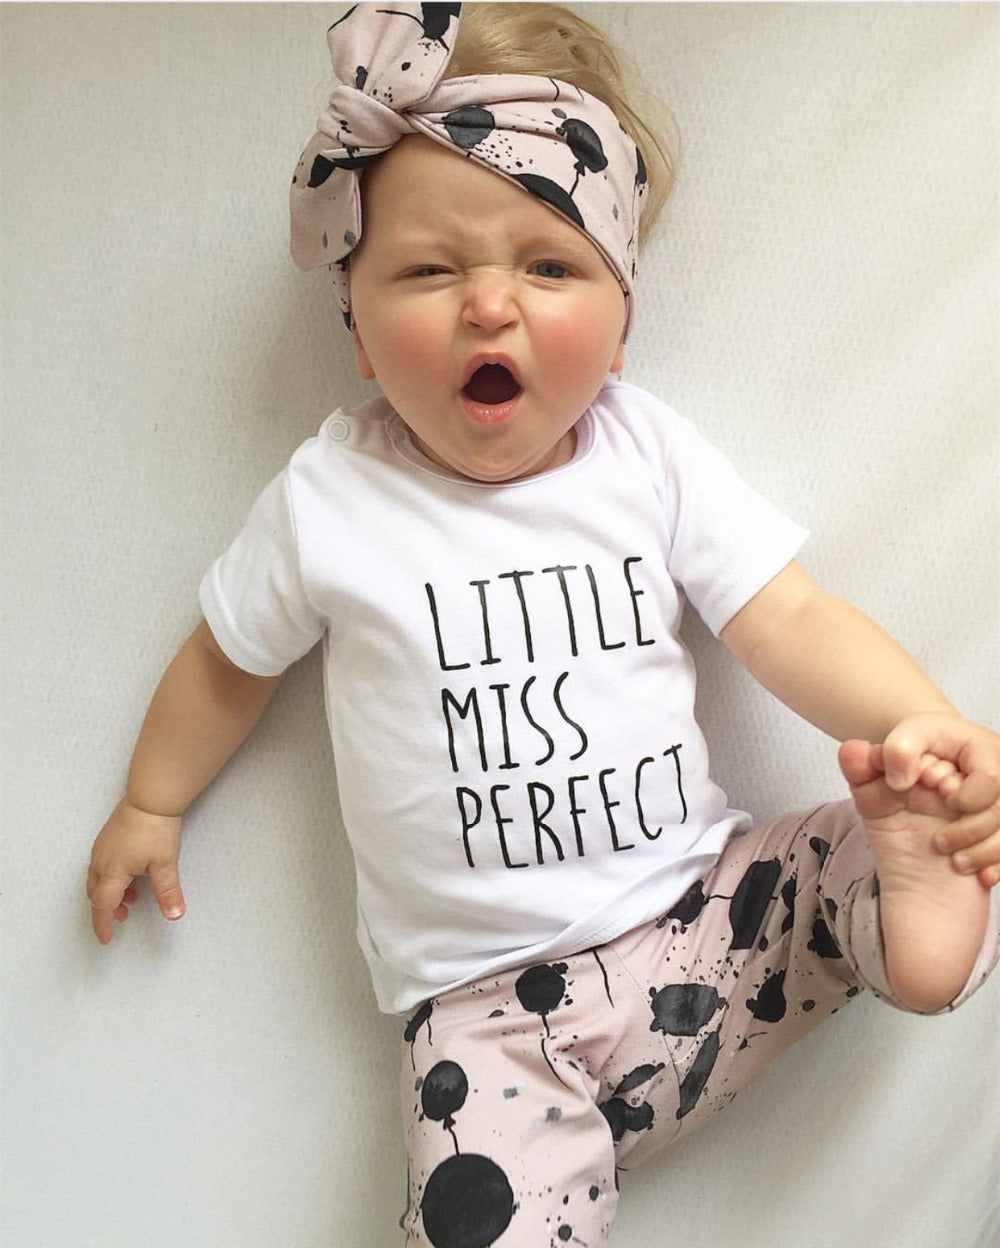 Little Miss Perfect 3 Piece Outfit For Baby Girls